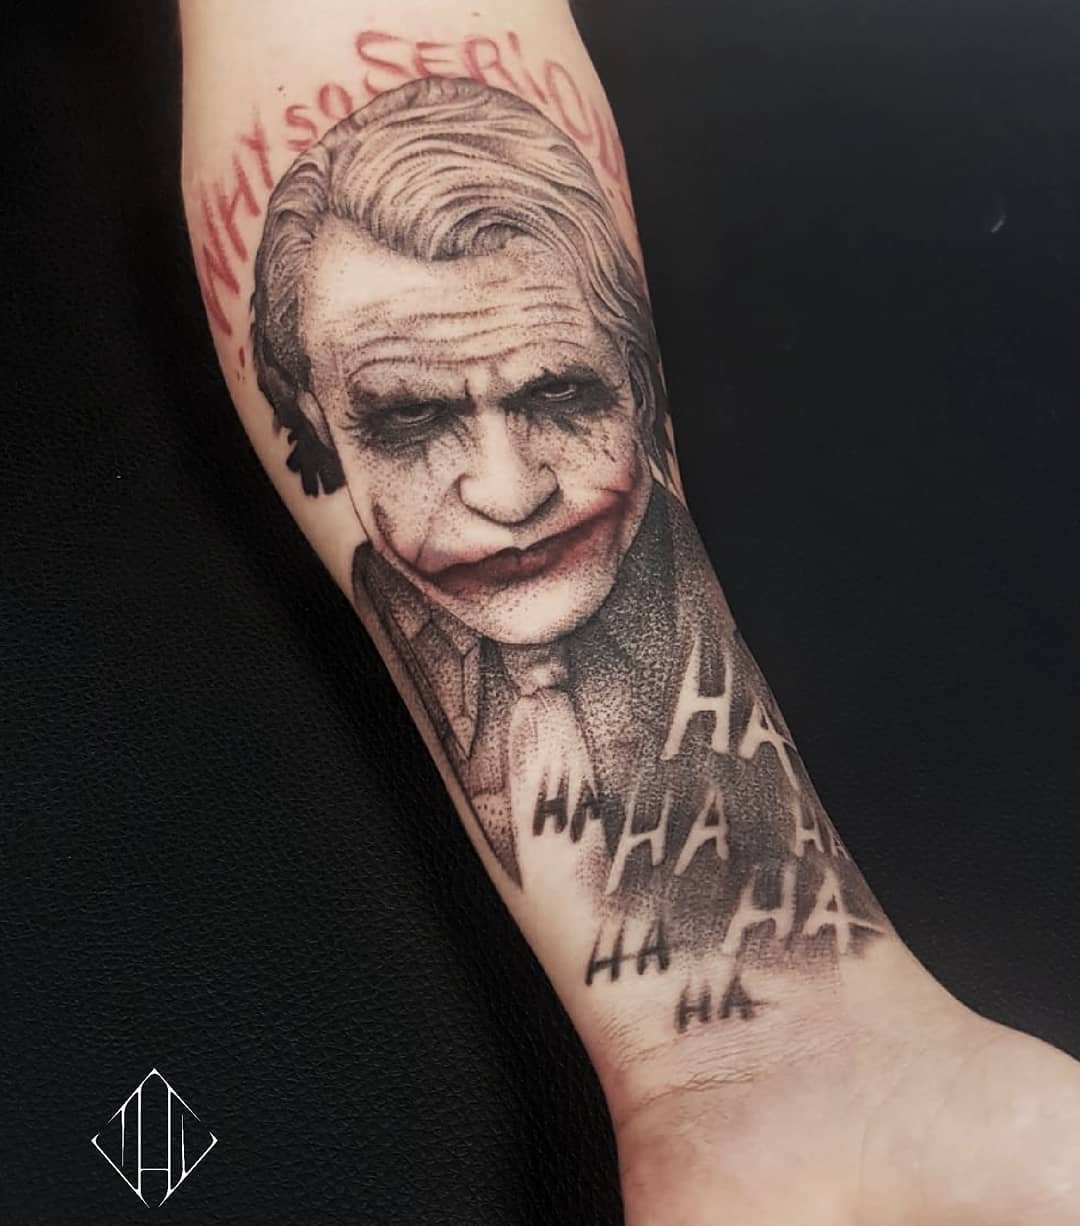 Tattoo Heath Ledger as The Joker with the Why So Serious quote